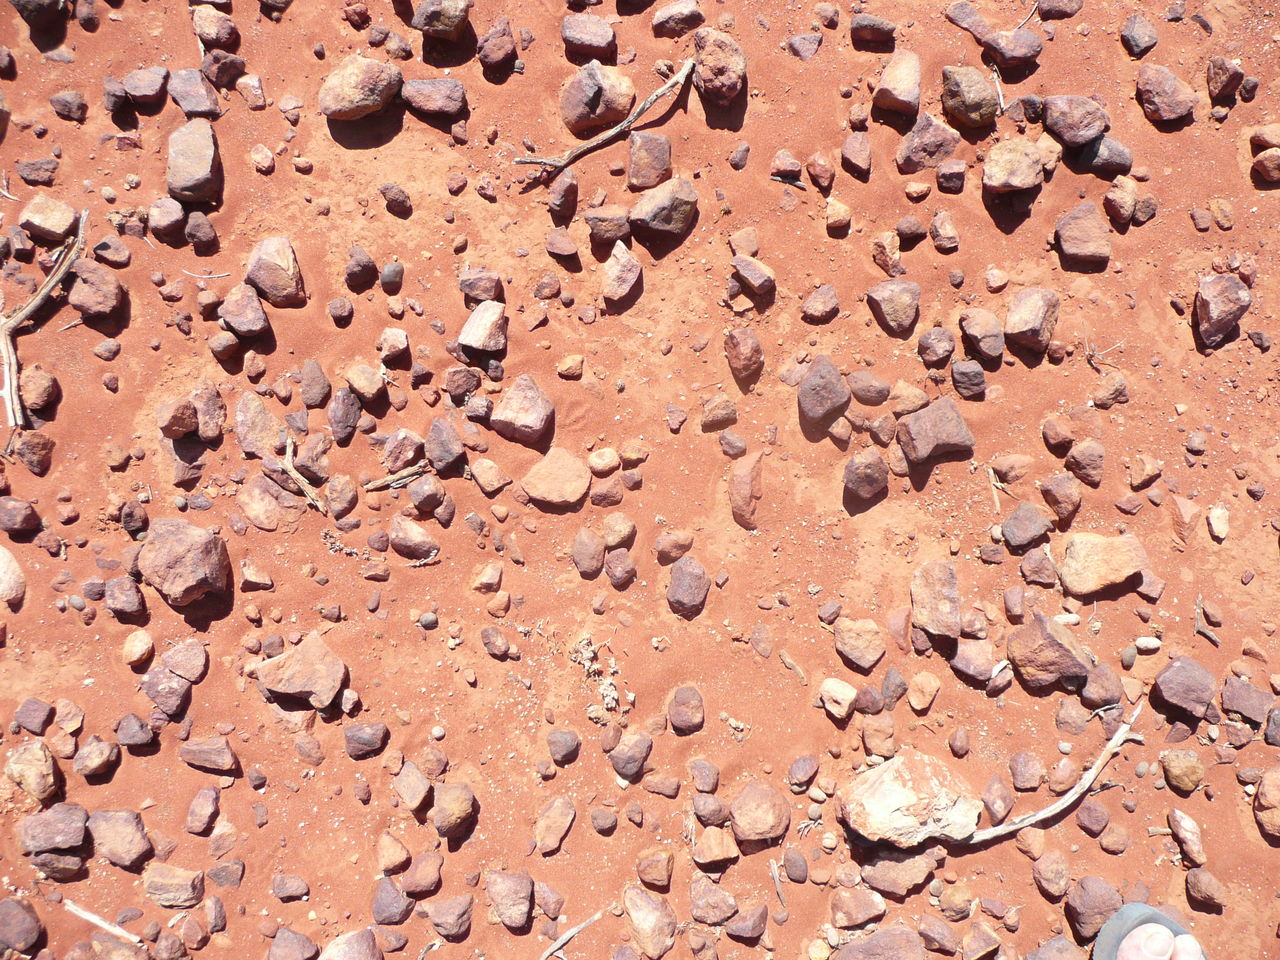 Backgrounds Close-up Day Erd Earth Full Frame Nature No People Outdoors Stones & Red Earth Stones And Pebbles Stoney Background Stoney Earth The Great Outdoors - 2017 EyeEm Awards